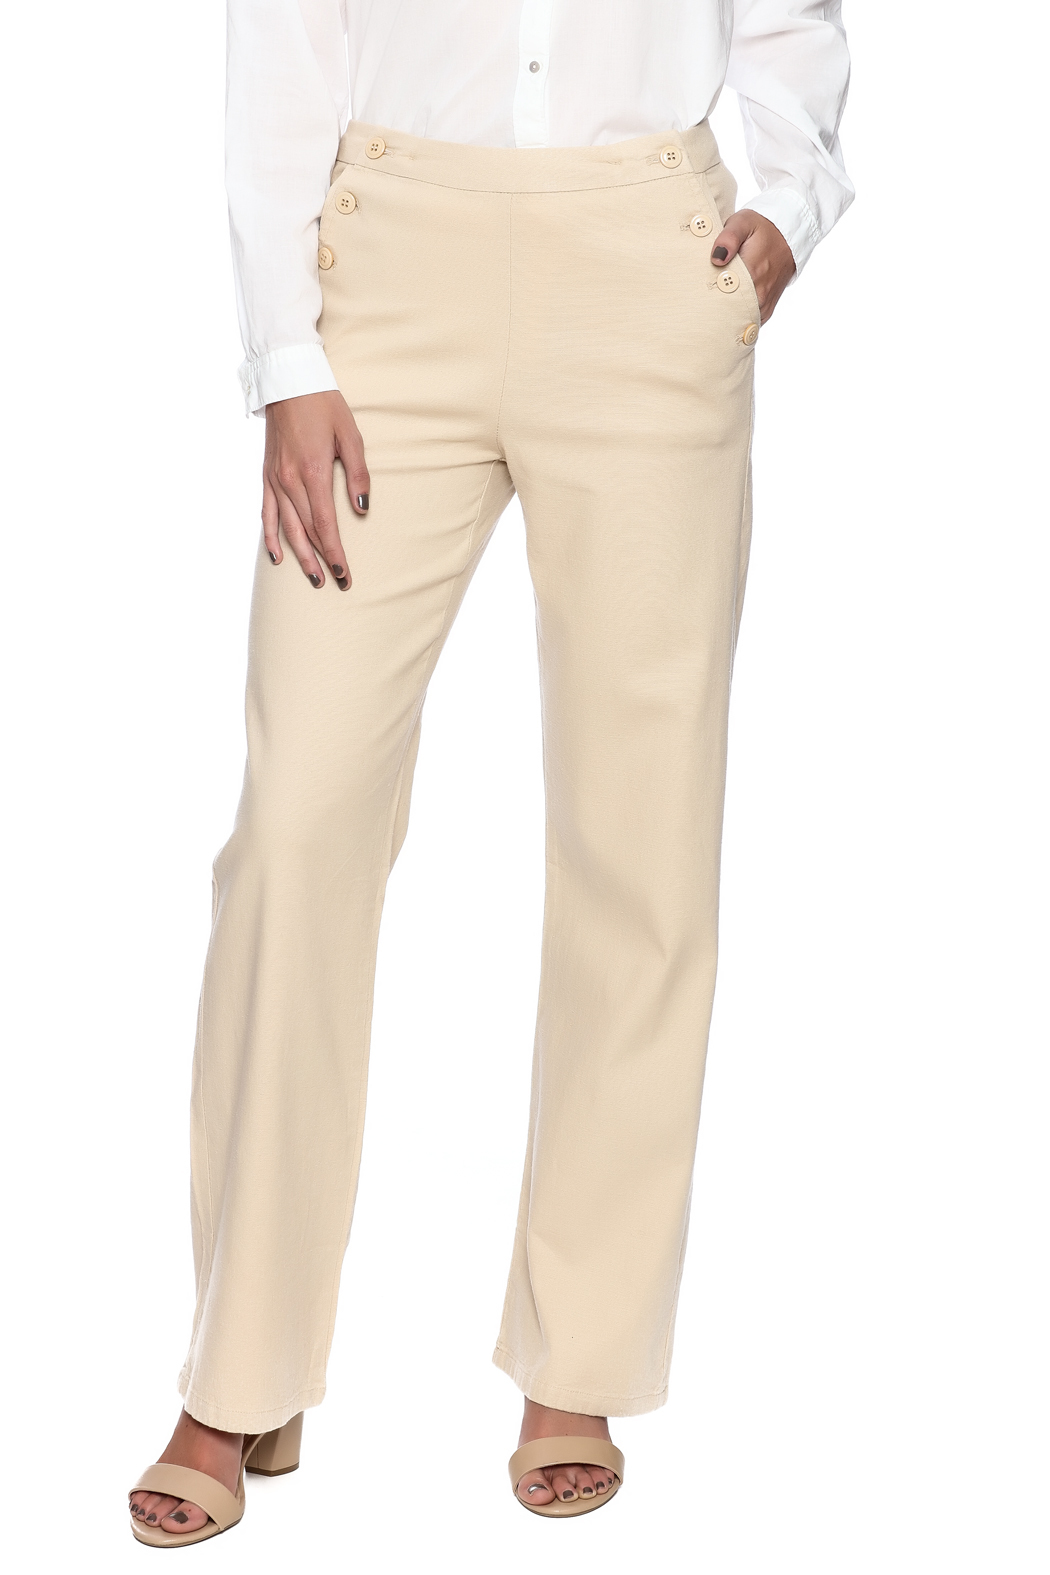 Bishop + Young Button Front Pants - Main Image